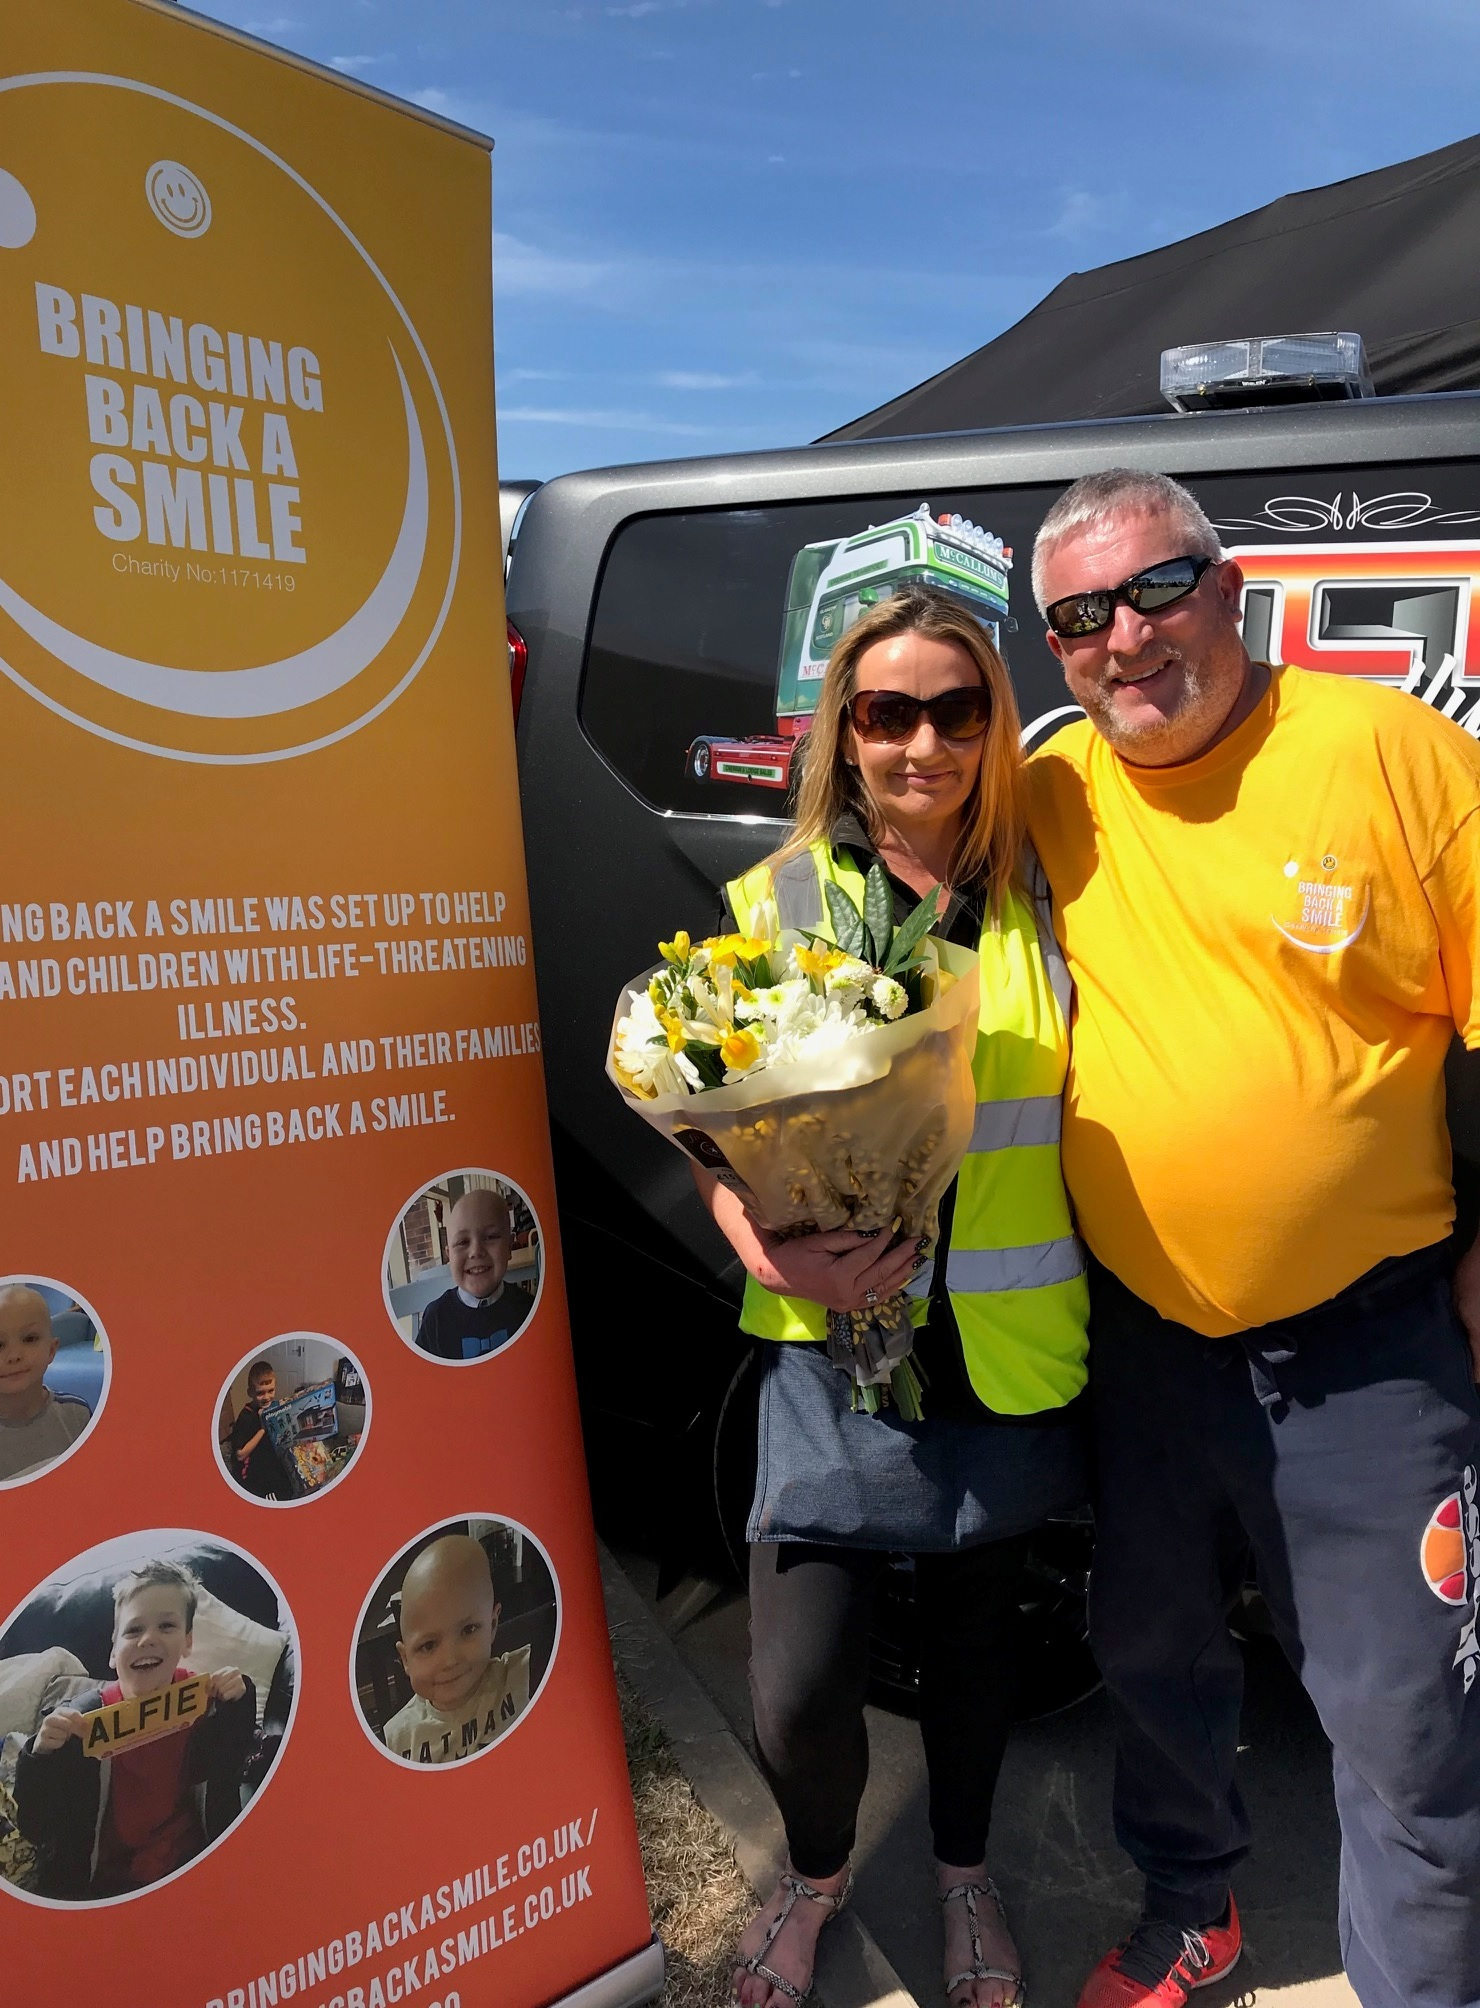 SUPPORT: Kevin Hill, of Bringing Back a Smile, at the Thirsk Truck Gathering with organiser Suzie Dodds